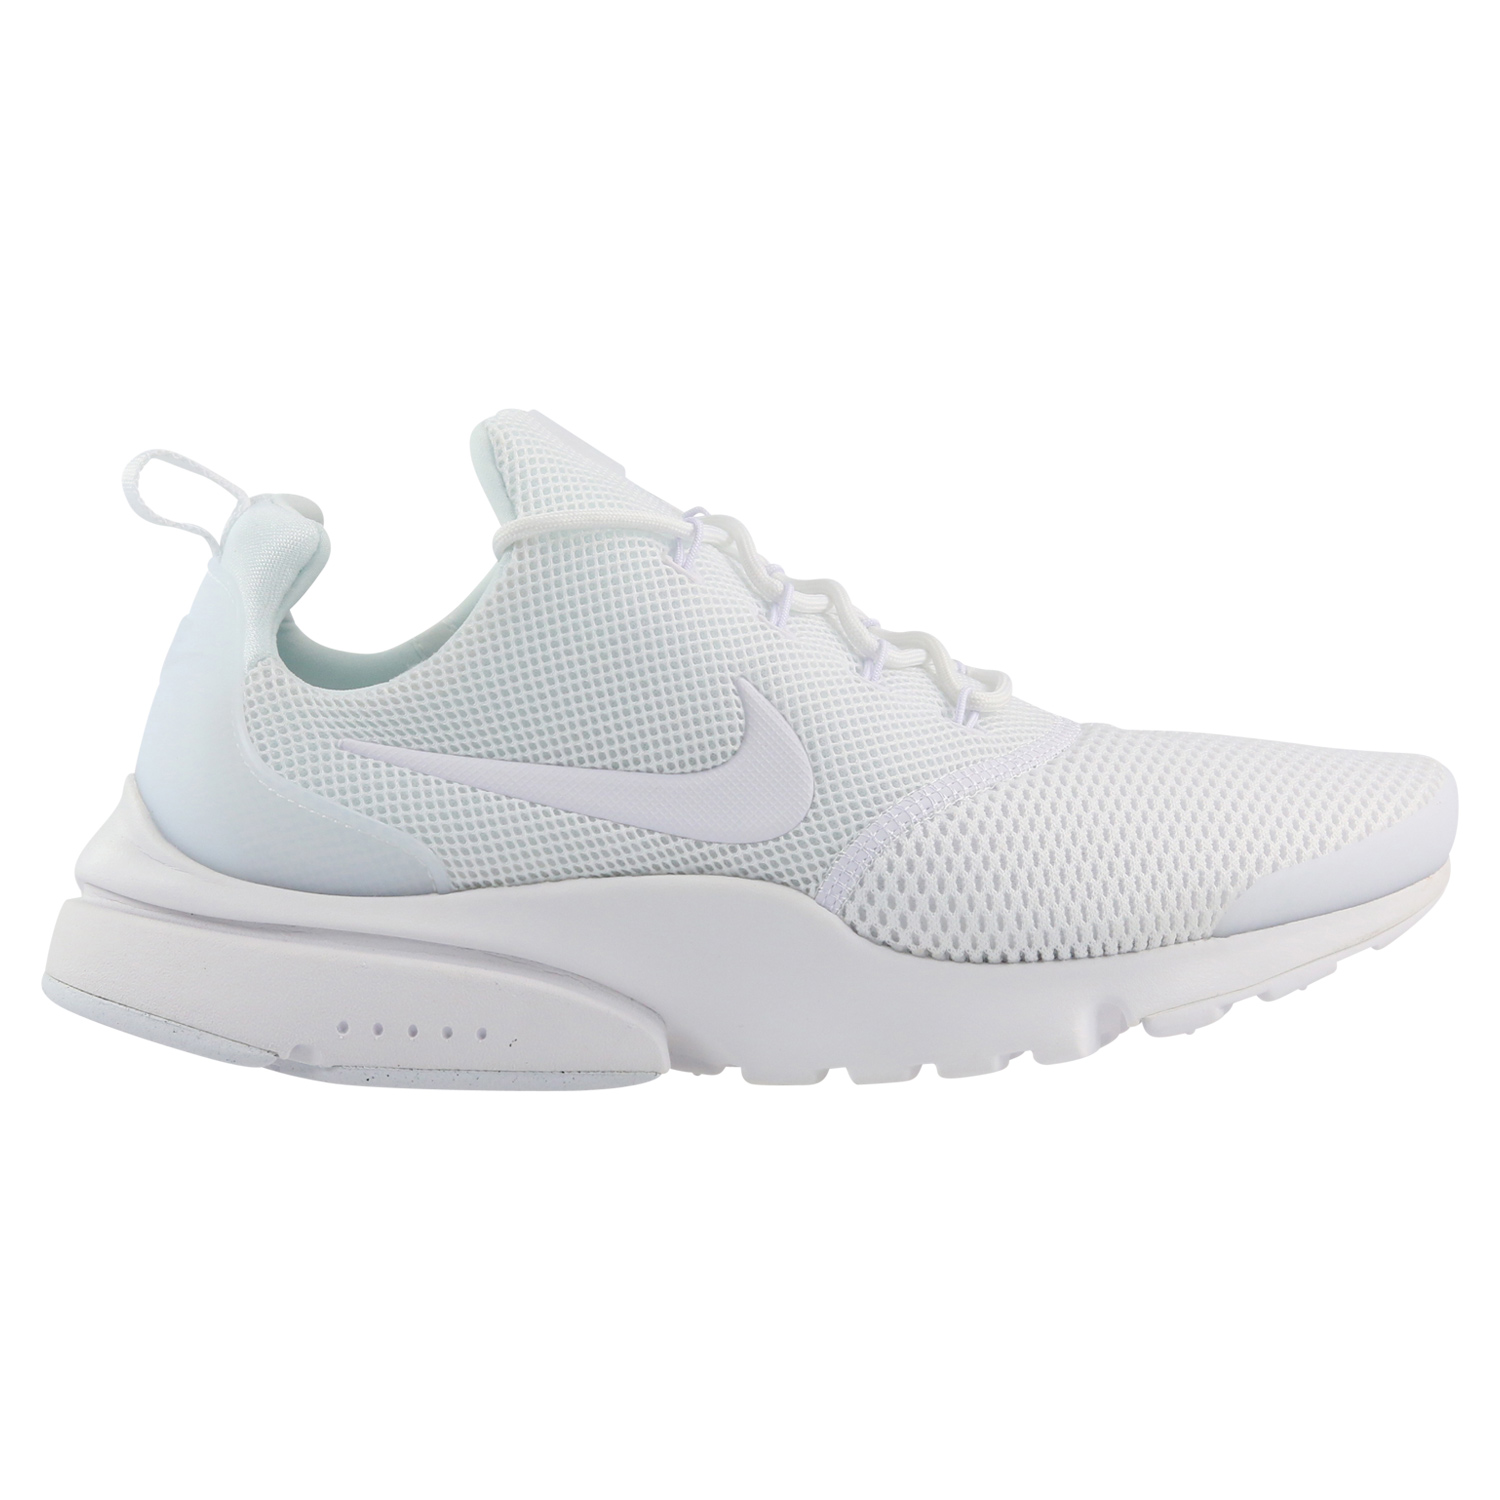 nike presto fly schuhe turnschuhe sneaker herren 908019 ebay. Black Bedroom Furniture Sets. Home Design Ideas